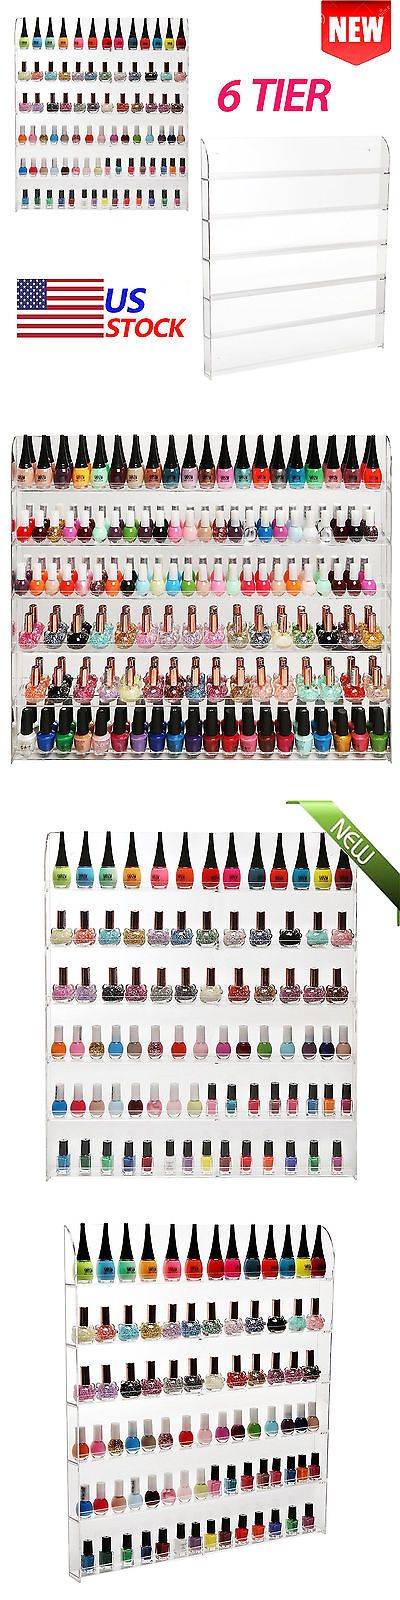 Best 25 Clear Acrylic Nails Ideas On Pinterest Natural